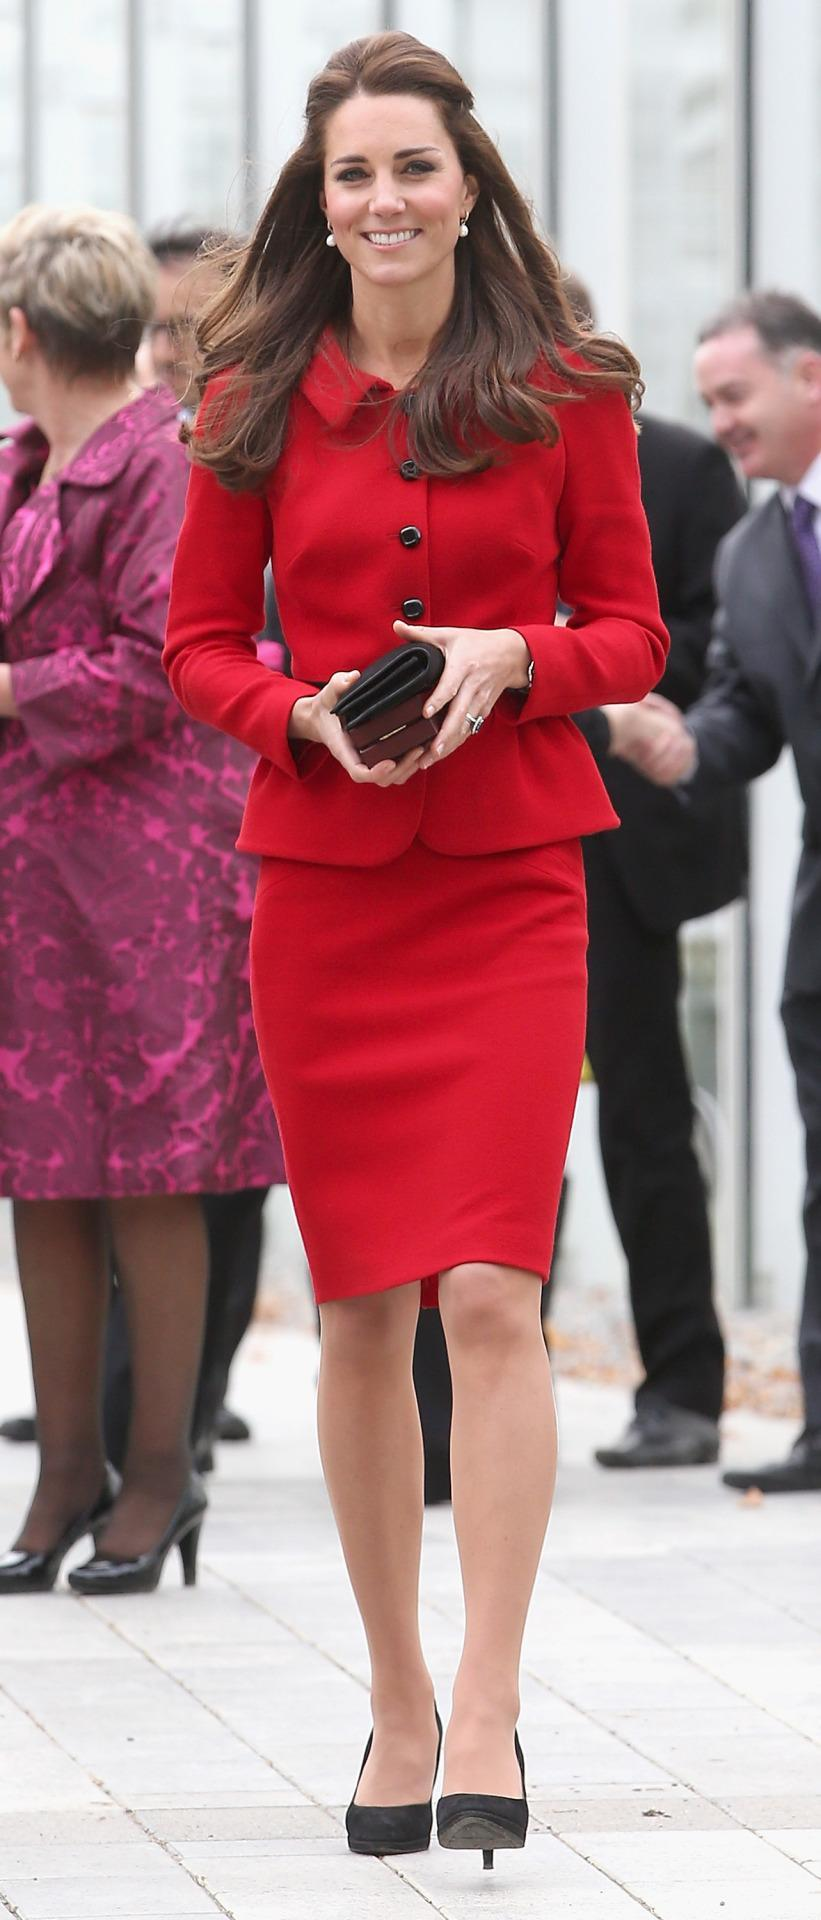 <p>Kate spent a day in Christchurch, New Zealand in a fitted red suit from Luisa Spagnoli. She carried a black Mulberry clutch and finished with suede pumps by Episode. </p><p><i>[Photo: PA]</i></p>